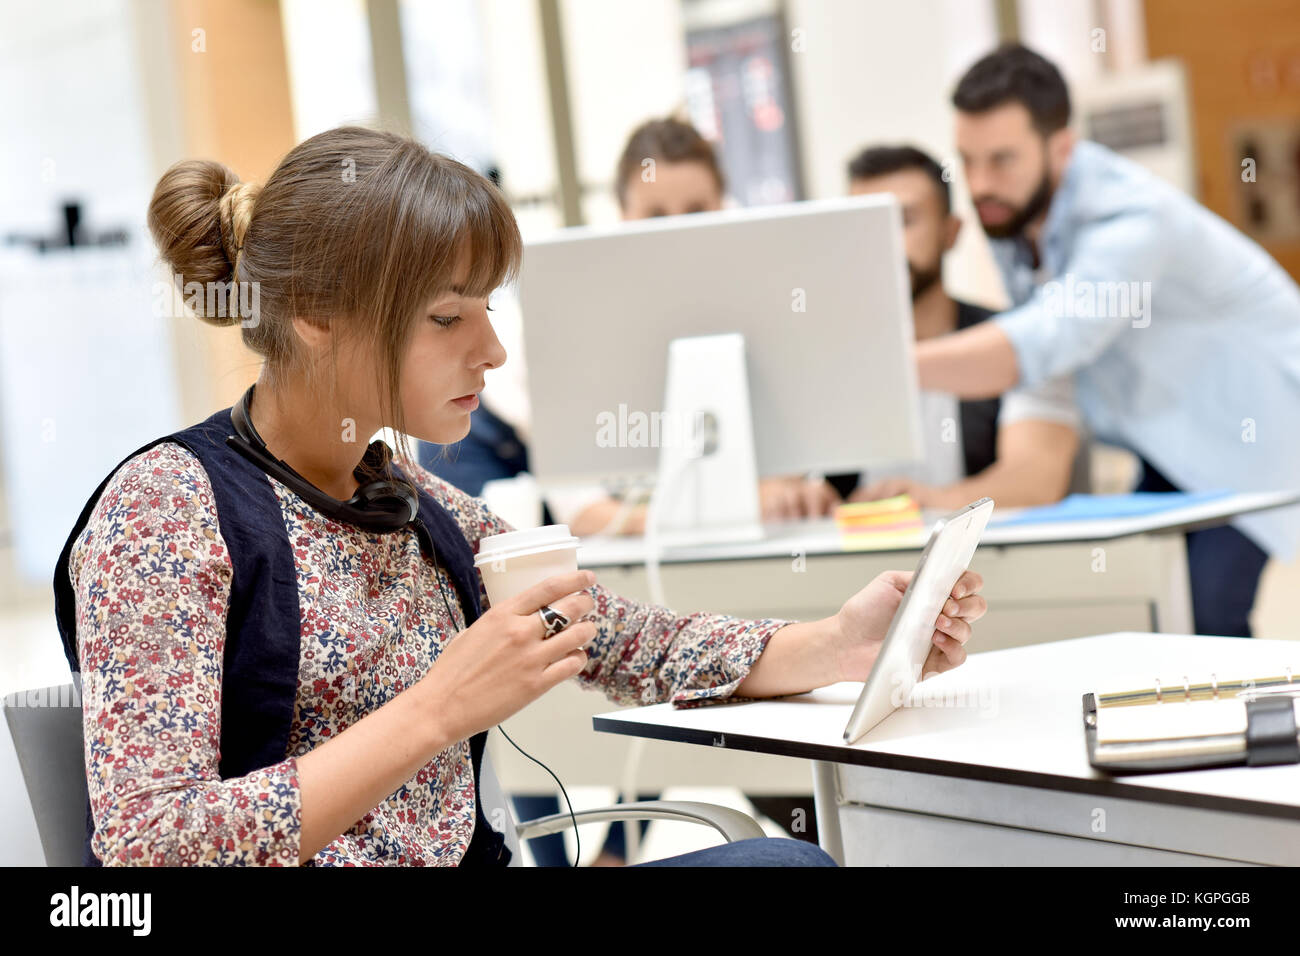 Trendy young woman in office working on tablet - Stock Image